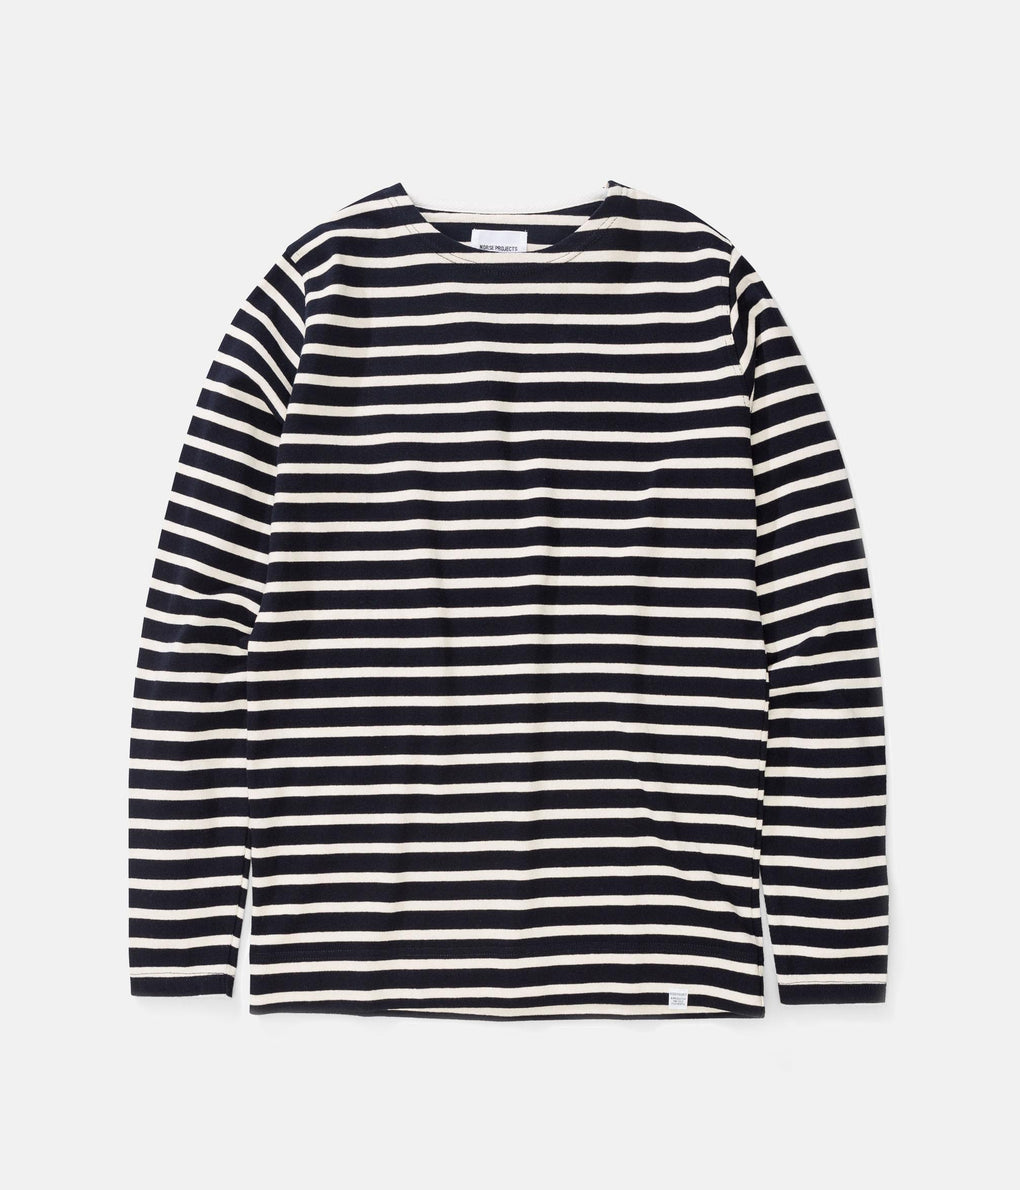 Norse Projects Godtfred Classic Long Sleeve T-Shirt - Navy / Ecru